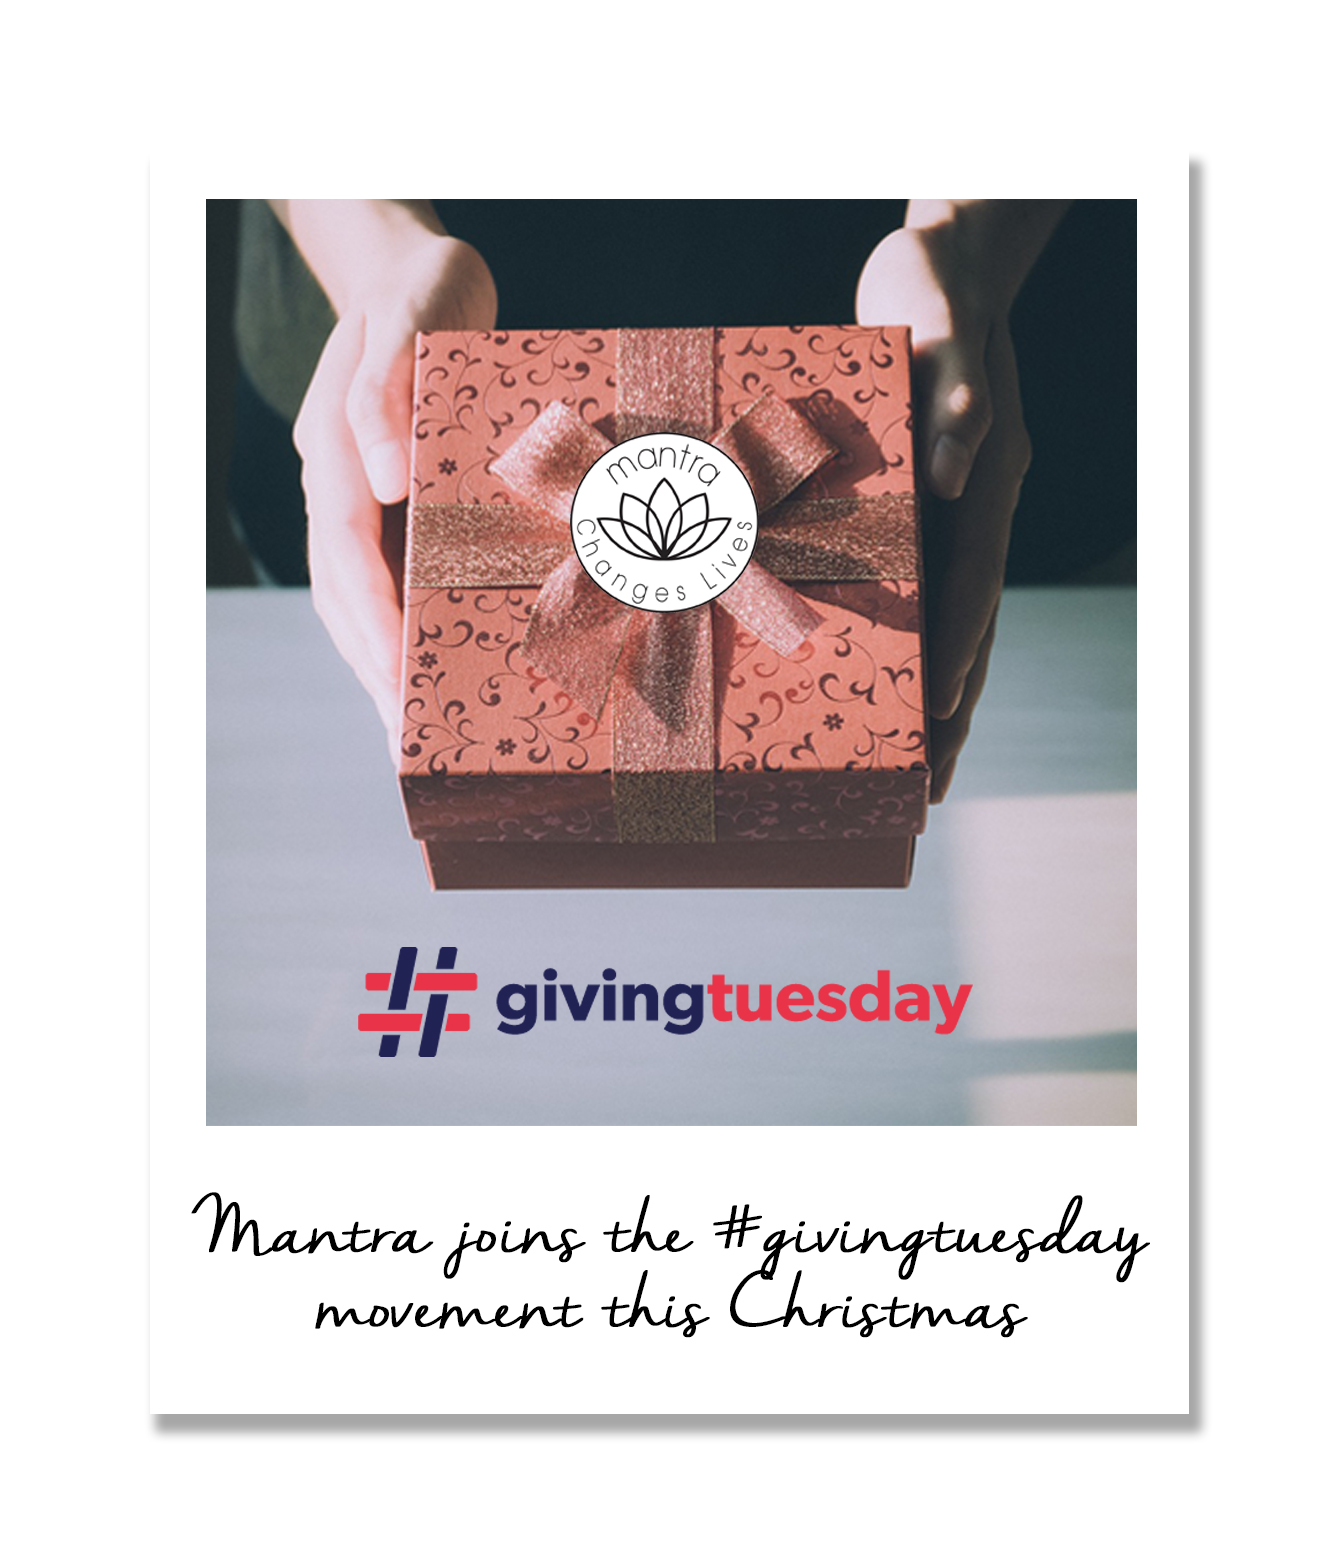 Mantra donates on giving tuesday